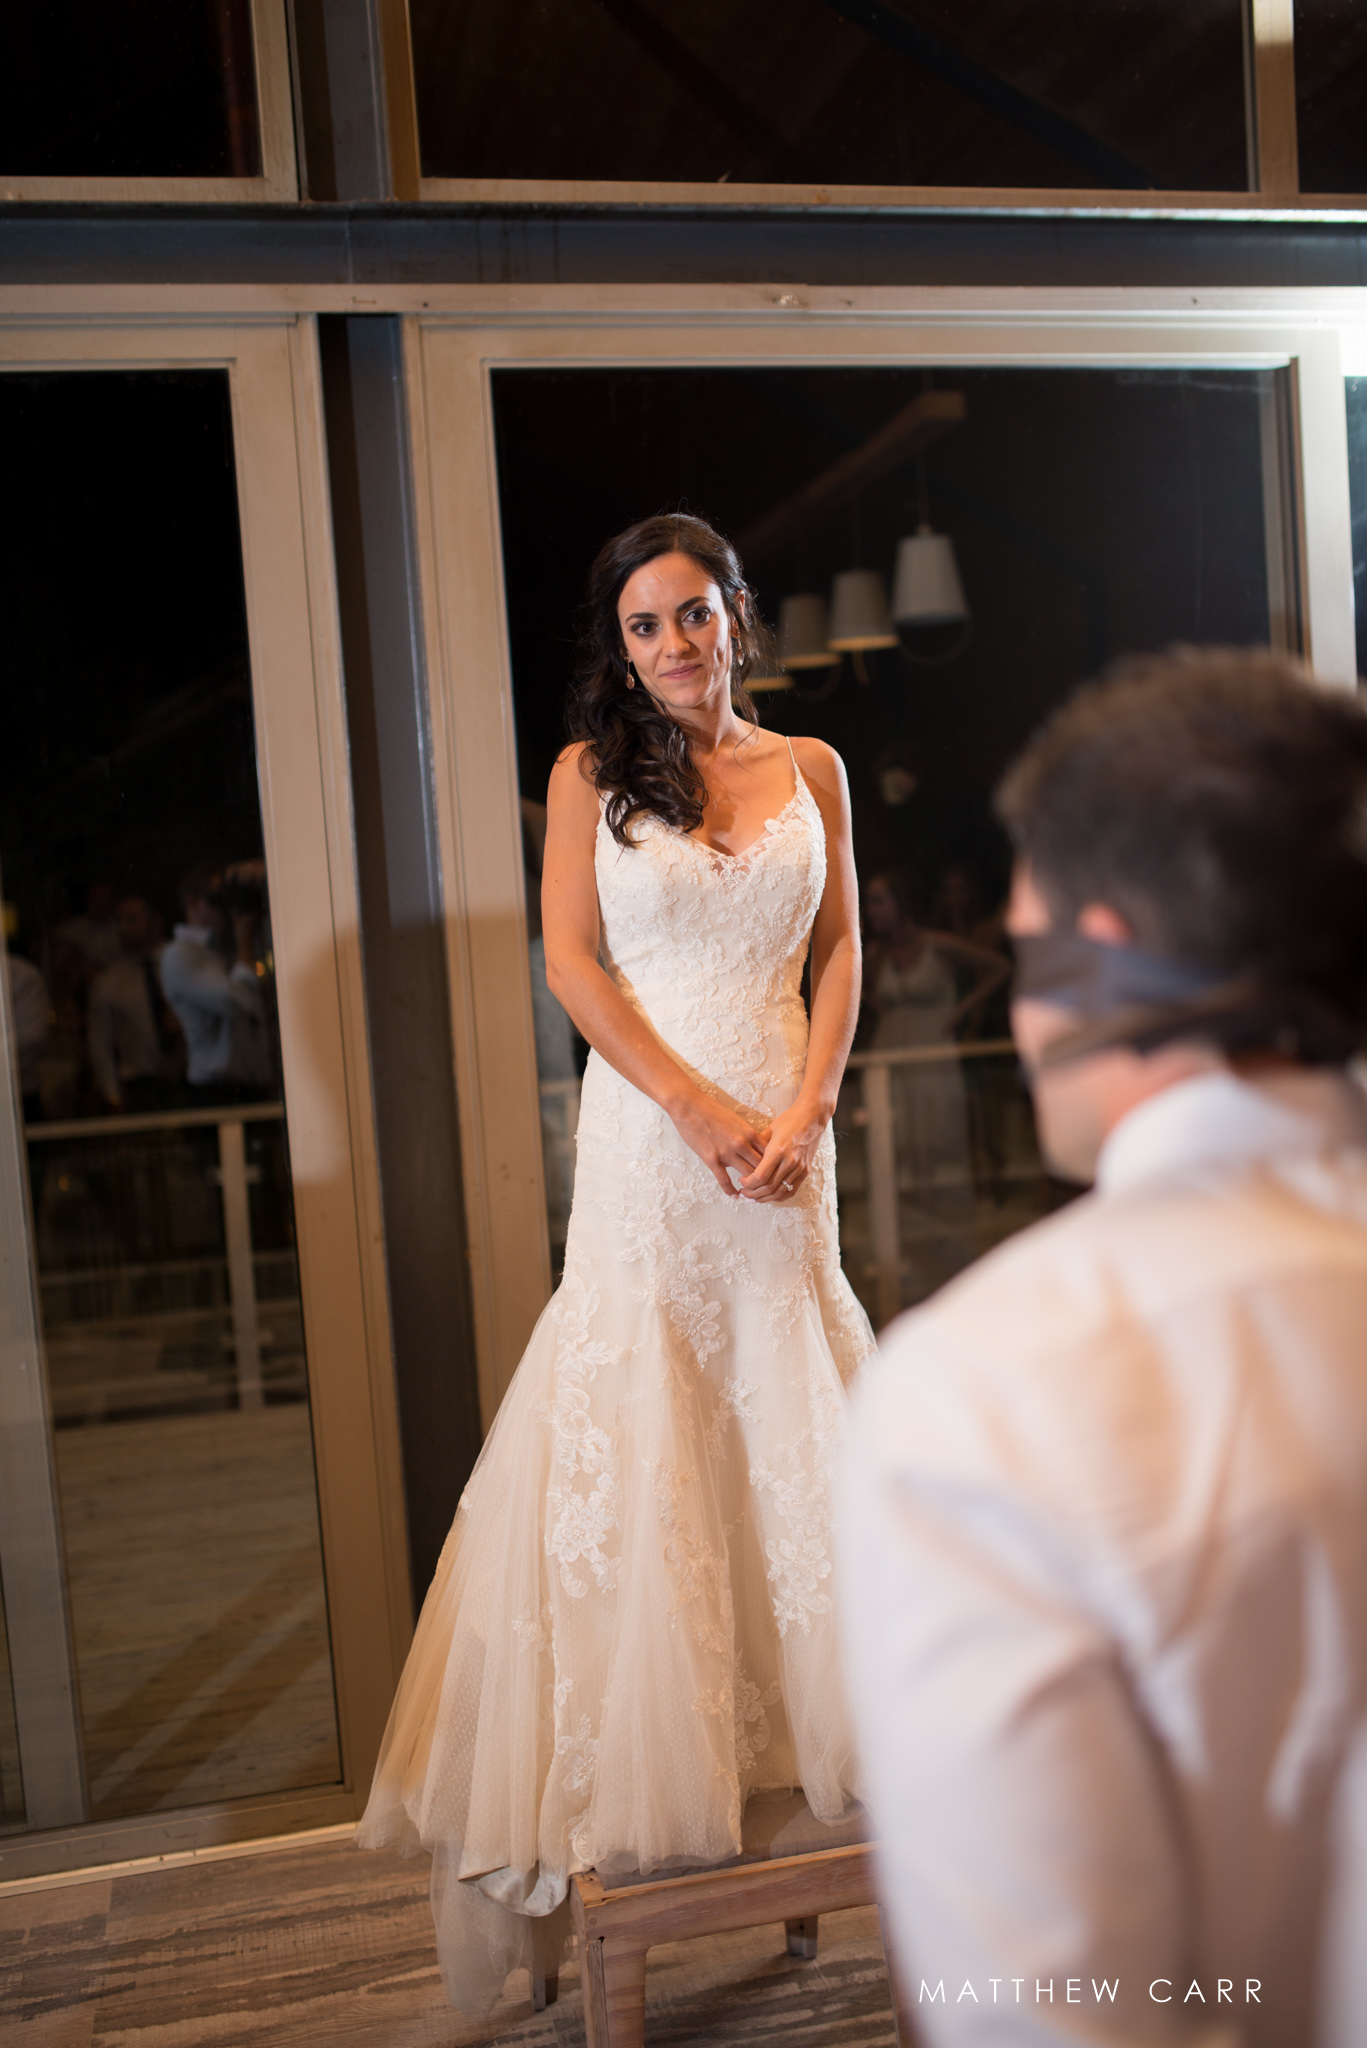 reception - low res (for viewing, social meida) (70 of 147).JPG